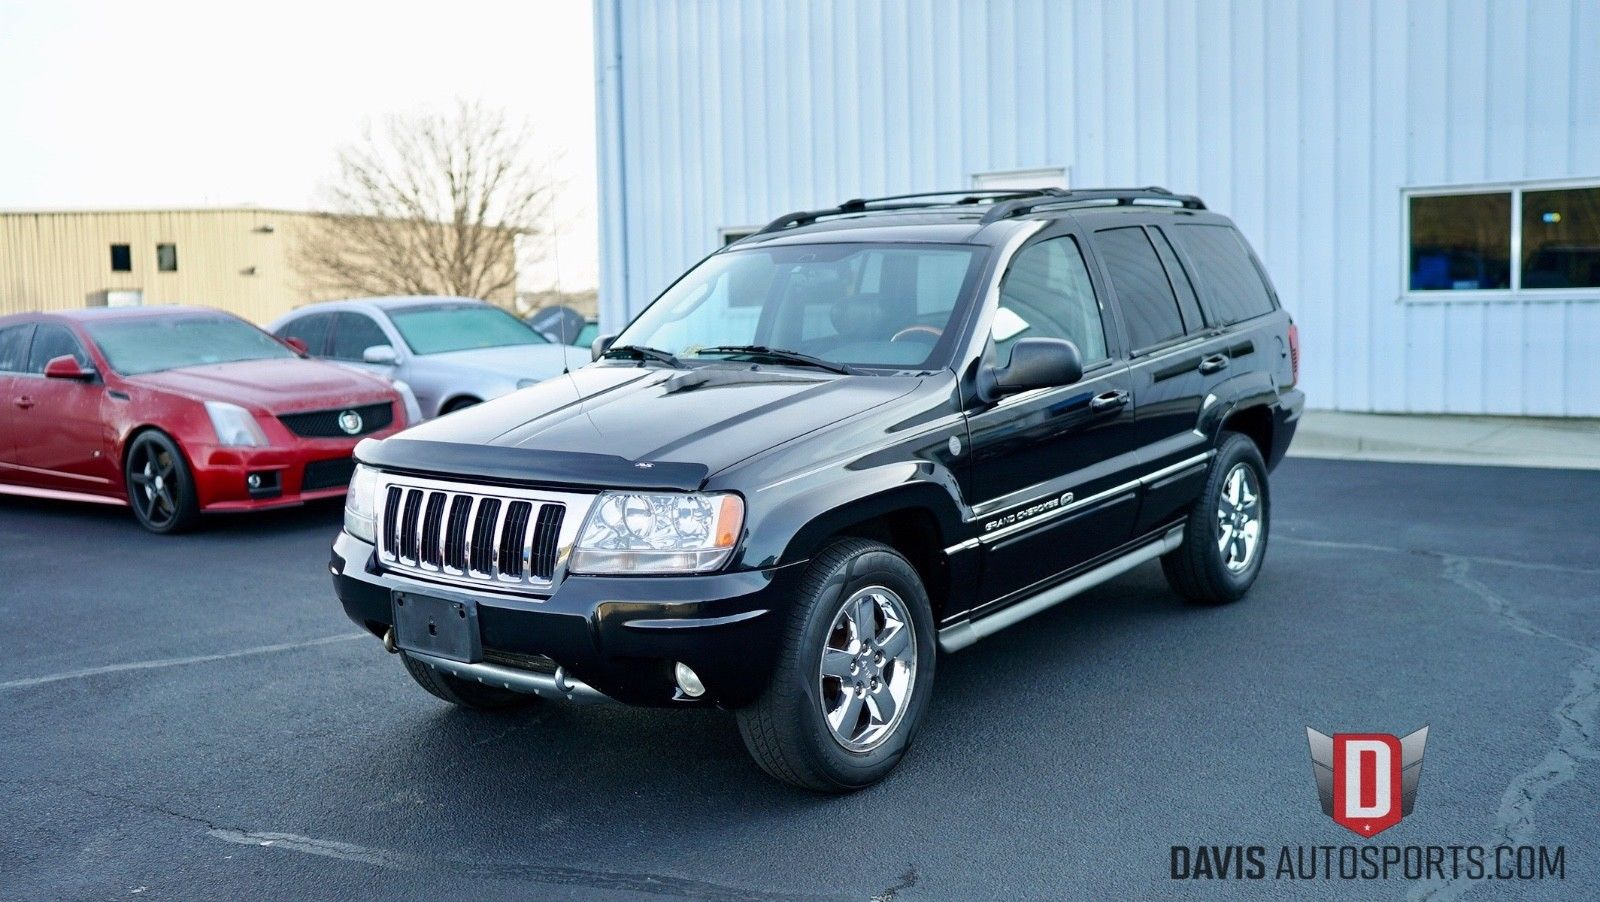 Great 2004 Jeep Grand Cherokee Overland 2004 JEEP GRAND CHEROKEE OVERLAND /  LOW MILES / V8 / LOADED / SERVICED / CLEAN 2017 2018